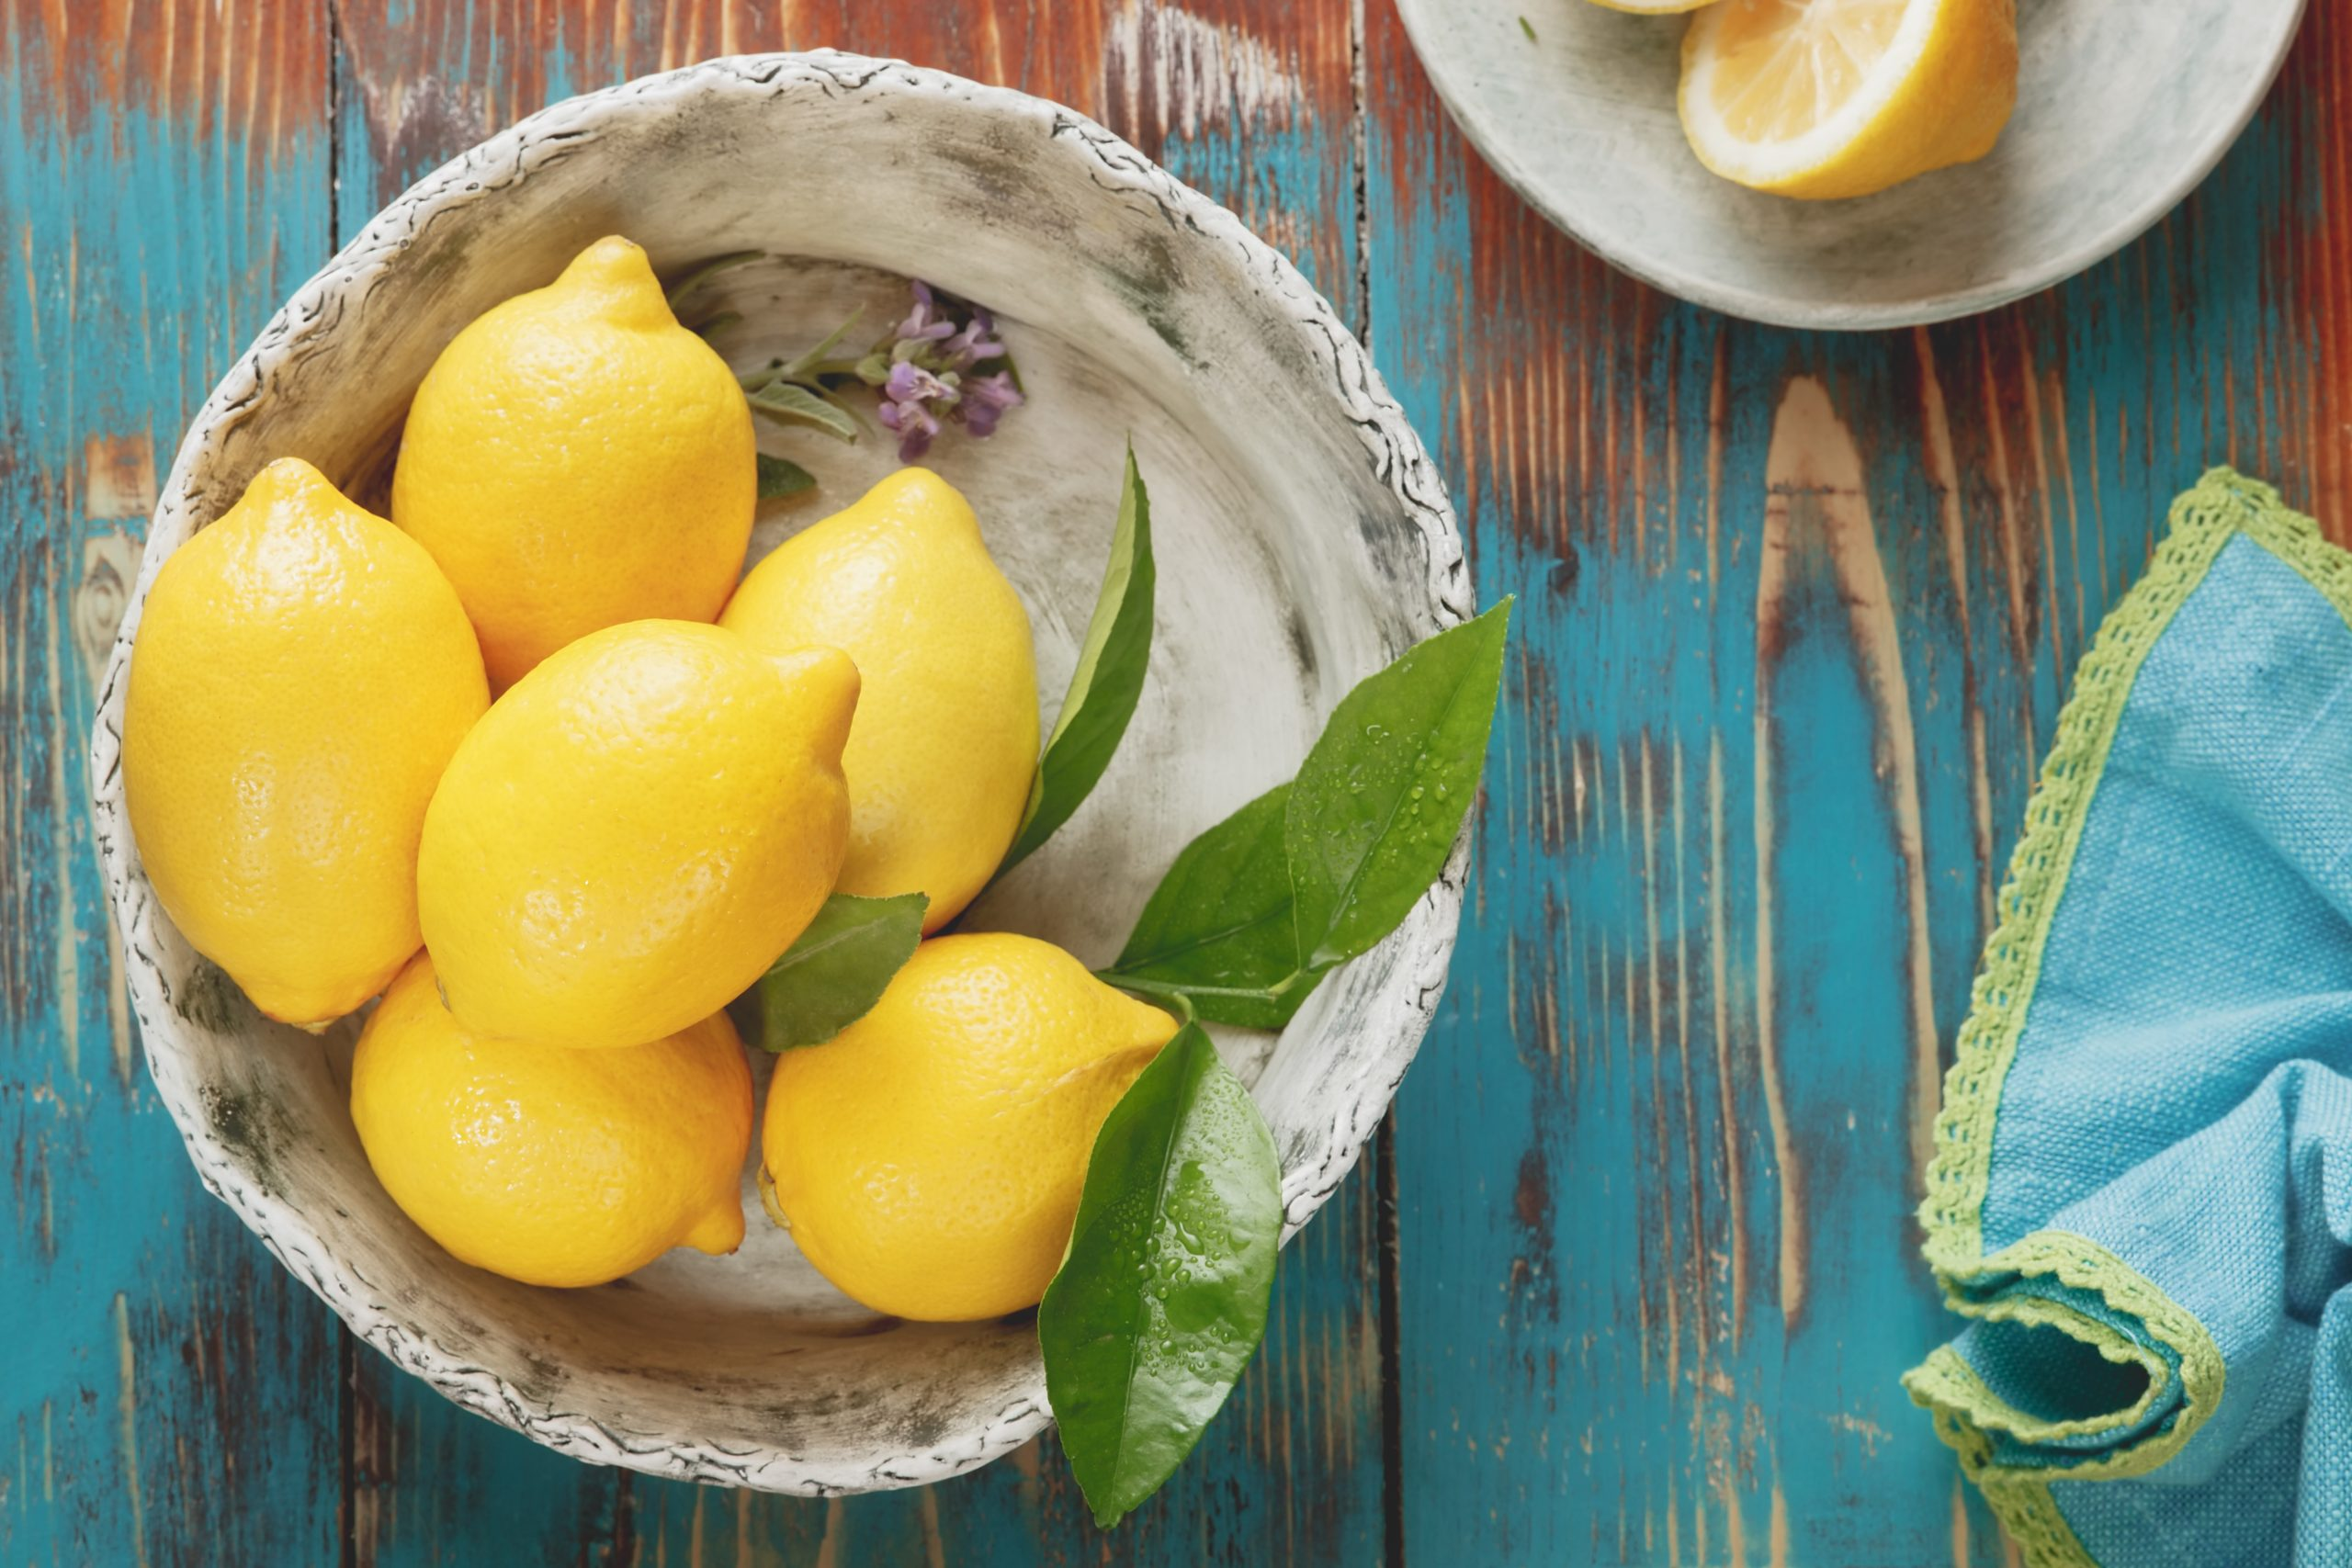 Lemons help heal your throat chakra